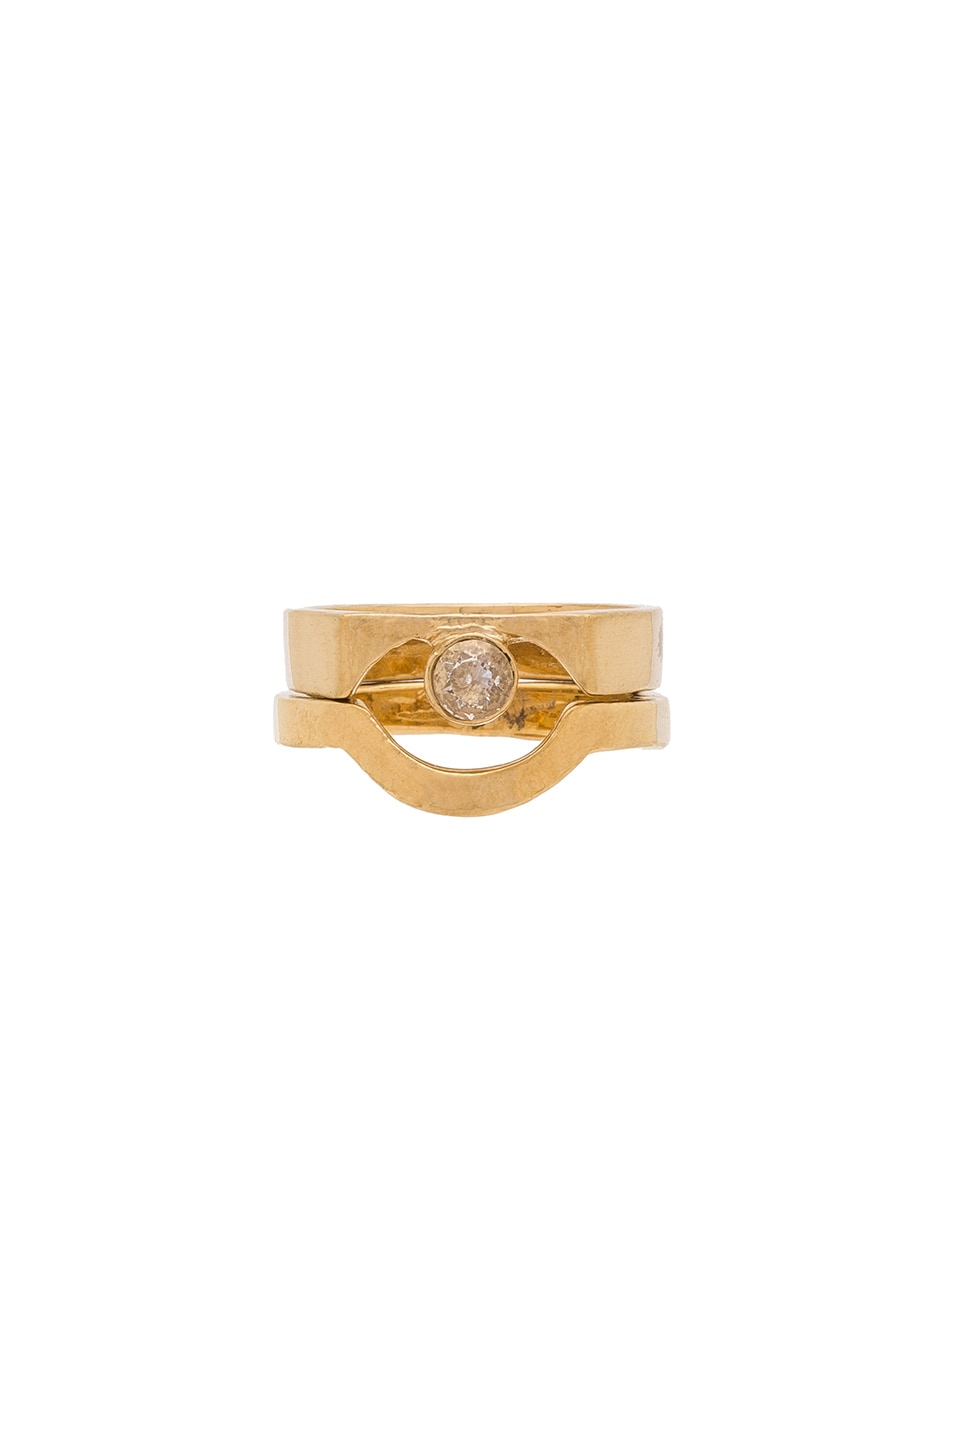 WOLF CIRCUS Pave Ring in 14K Gold Plated